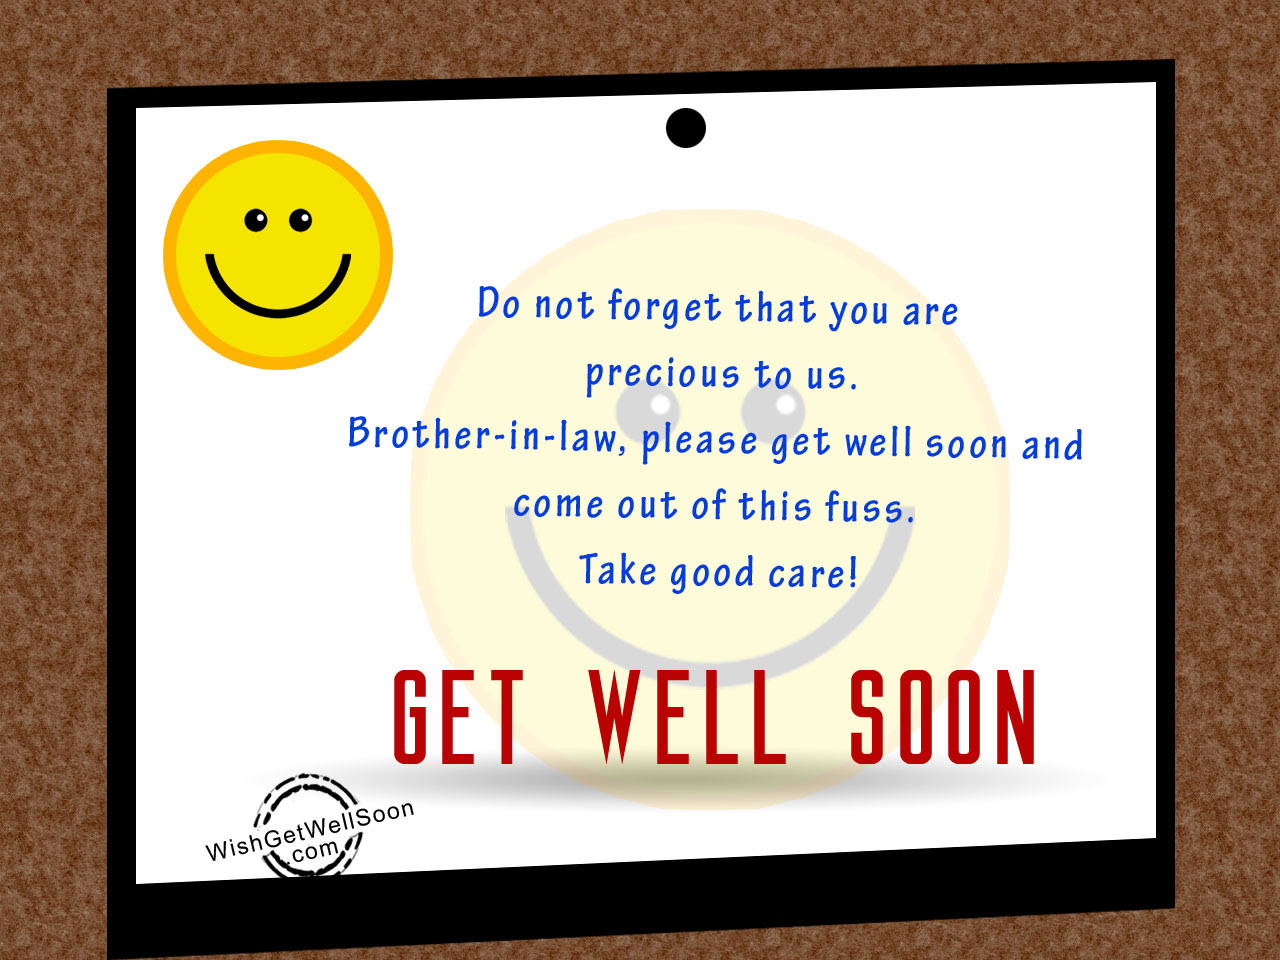 Get Well Soon Wishes For Brother In Law Pictures Images Page 2